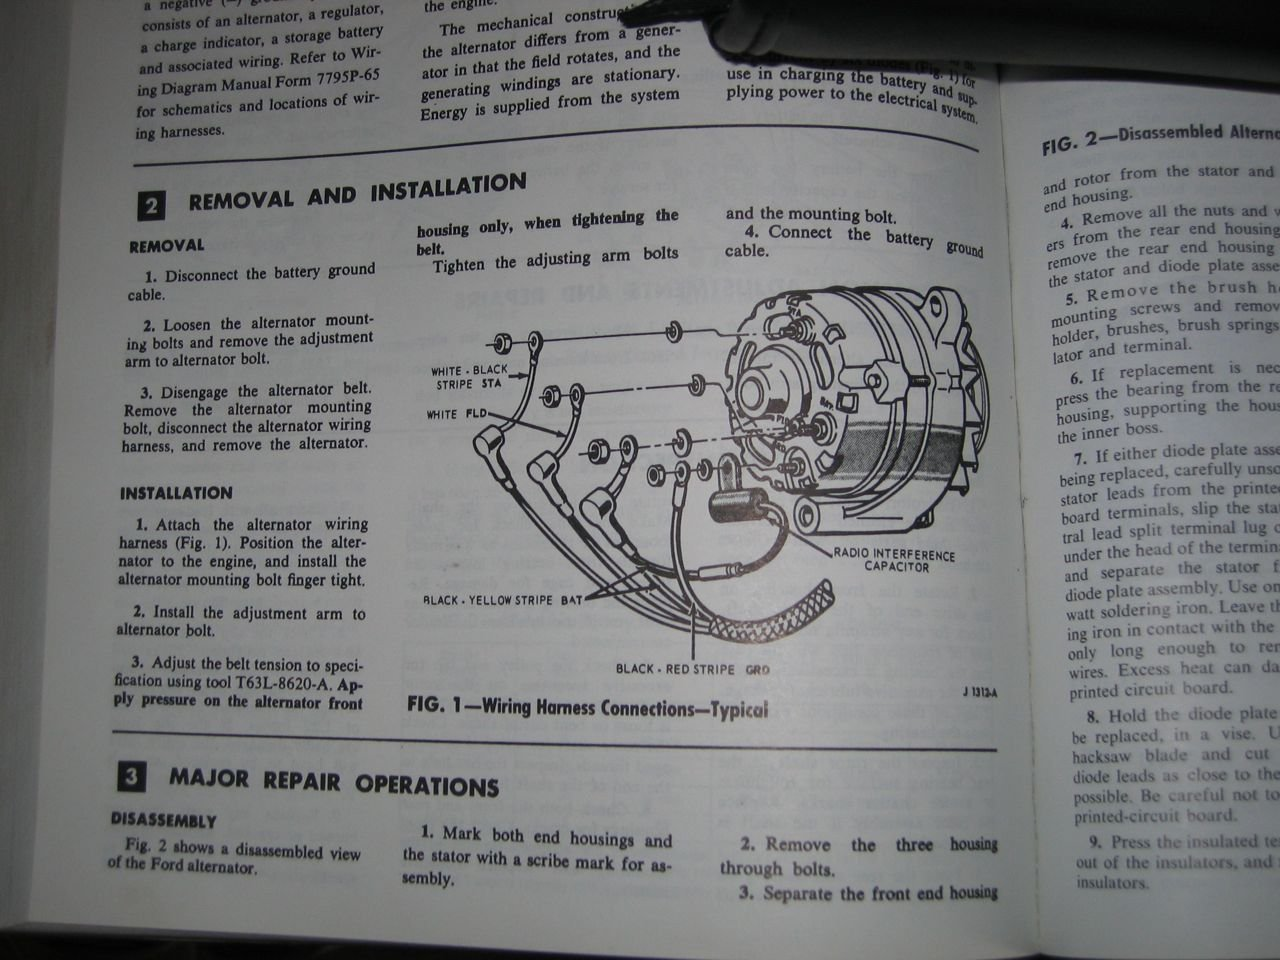 93328d1268767403 1966 mustang alternator wiring img_0749 1966 mustang alternator wiring ford mustang forum 68 mustang alternator wiring diagram at nearapp.co